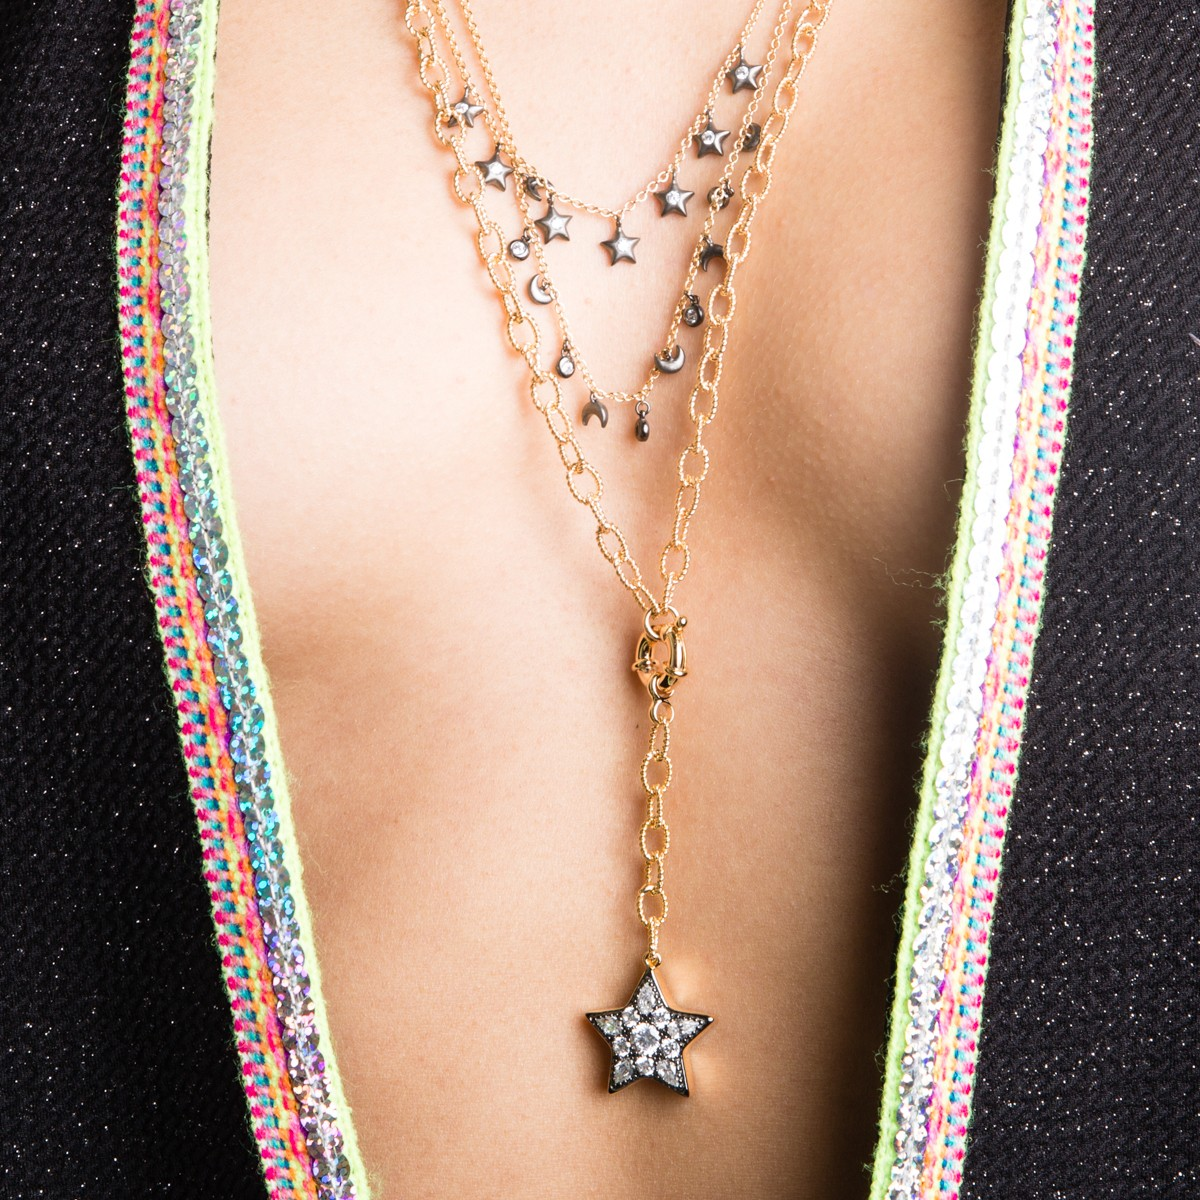 SA'MMA MOON AND STARS MULTI-STRAND NECKLACE